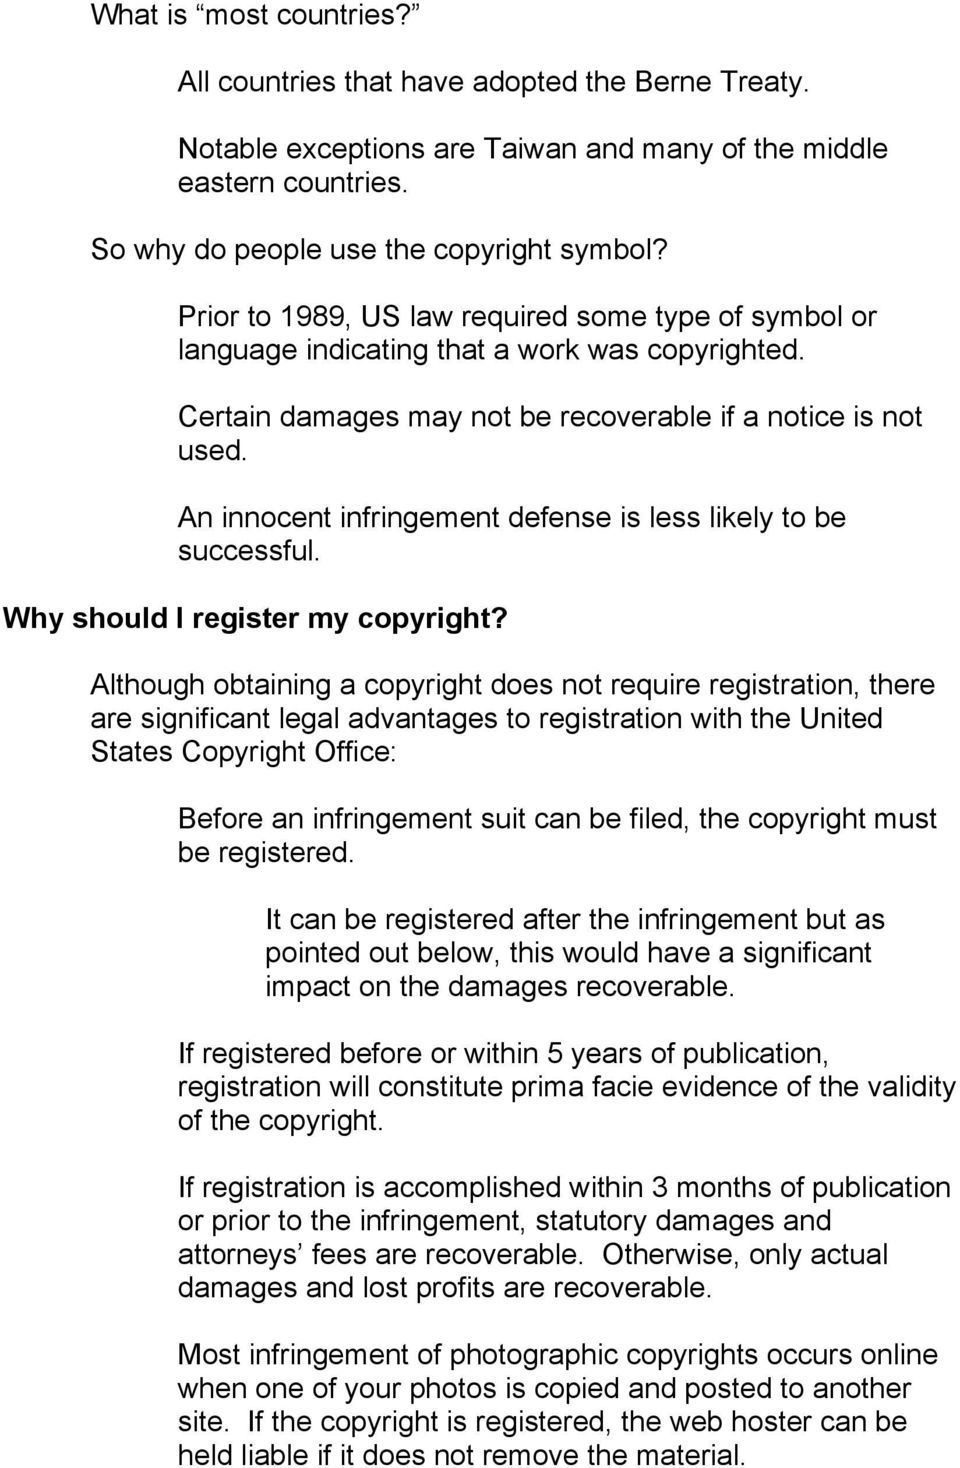 An innocent infringement defense is less likely to be successful. Why should I register my copyright?